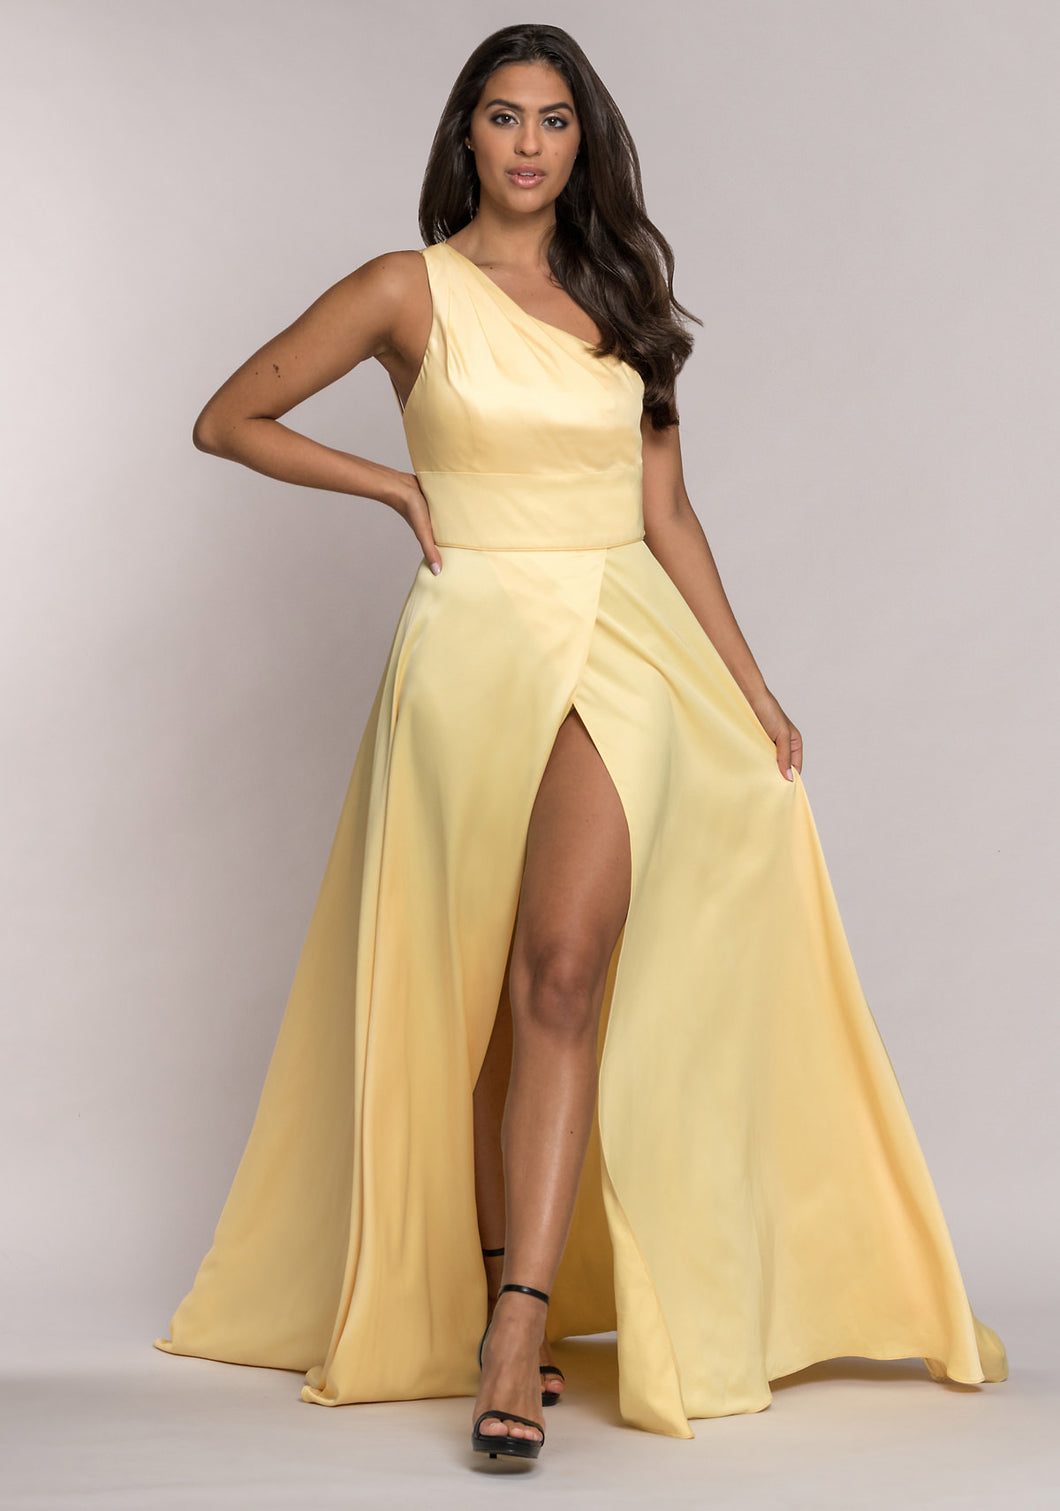 0577 Christian Koehlert | Yellow Evening and Prom Dress